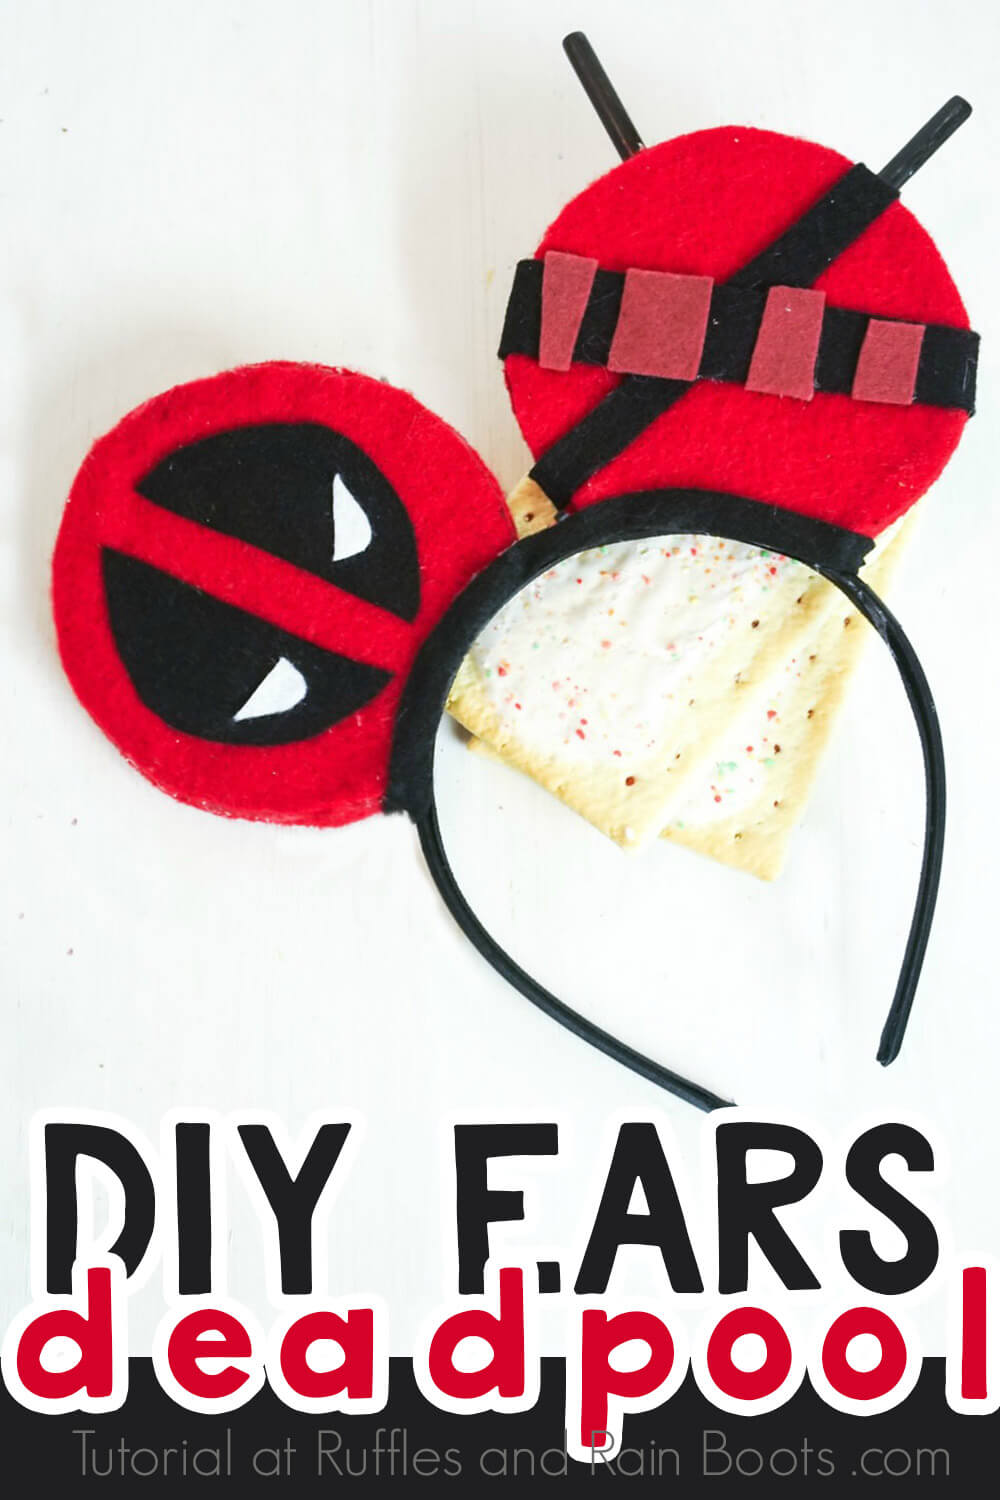 deadpool mickey ears no sew diy on a white background with poptarts with text which reads diy ears deadpool